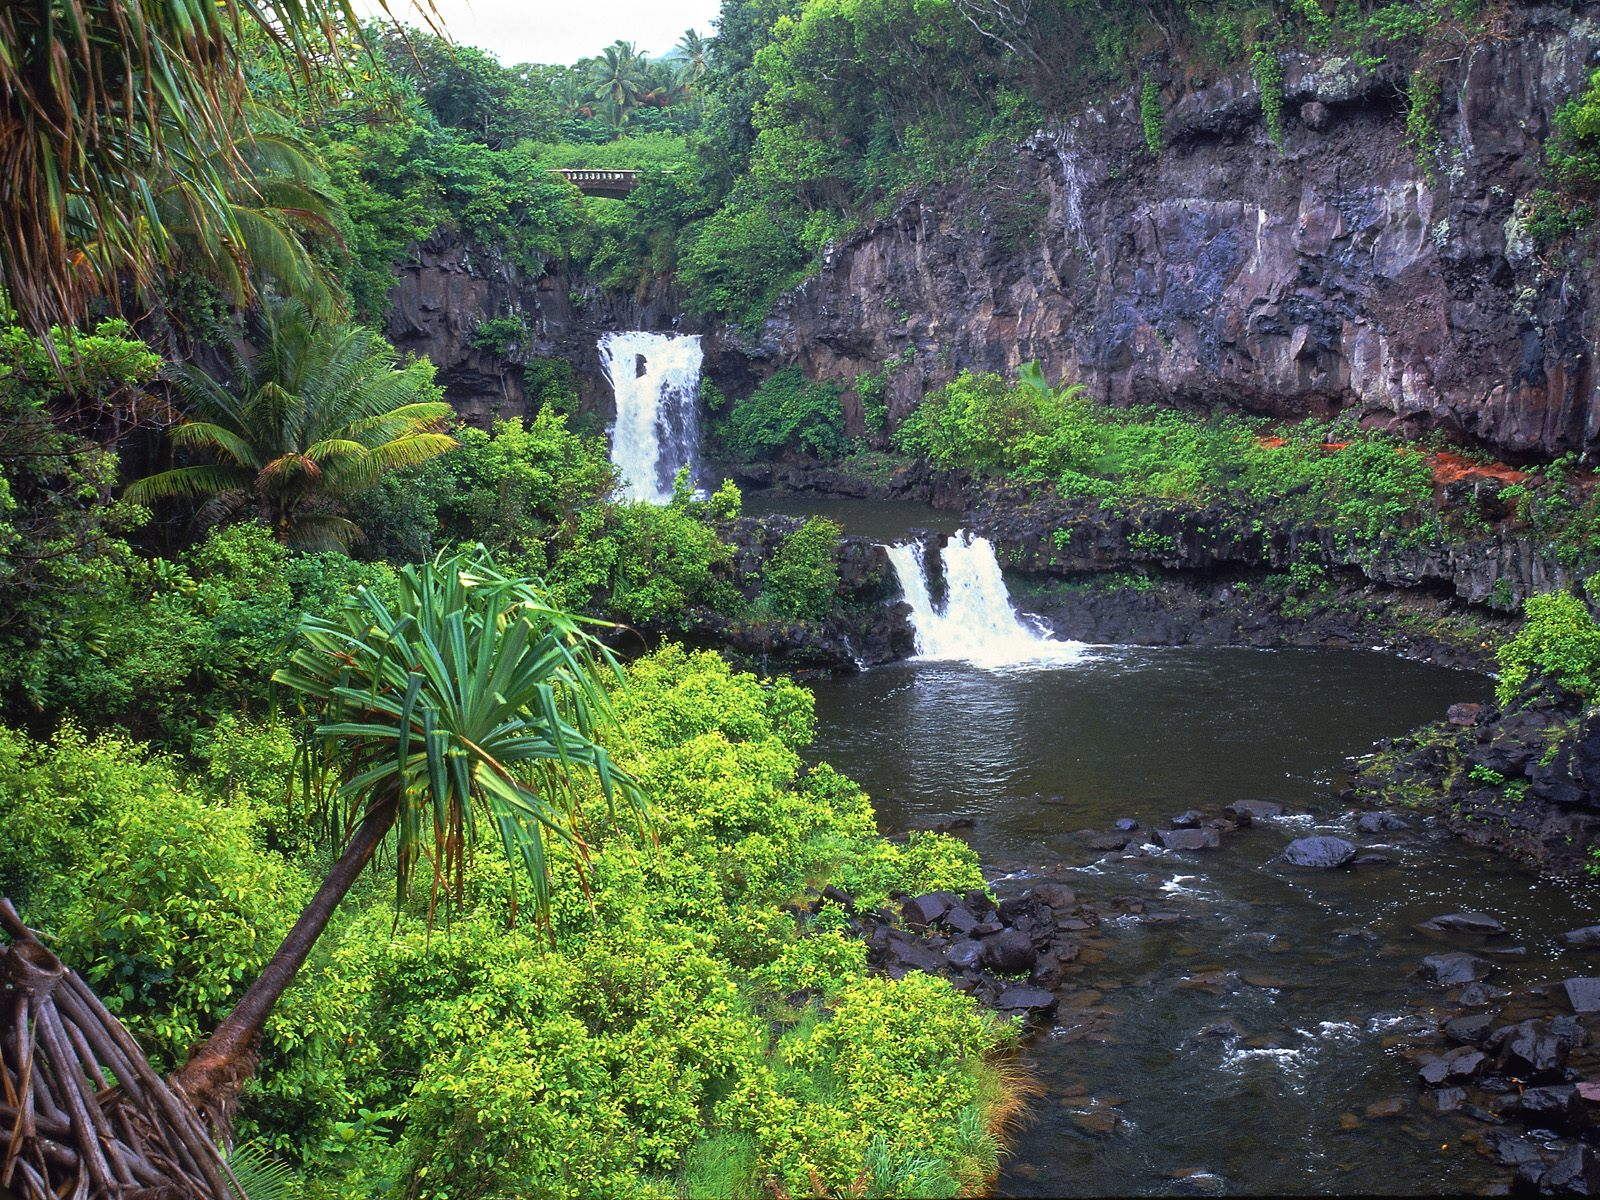 Maui-Waterfall-Stunning-Crystal-Clear-Water